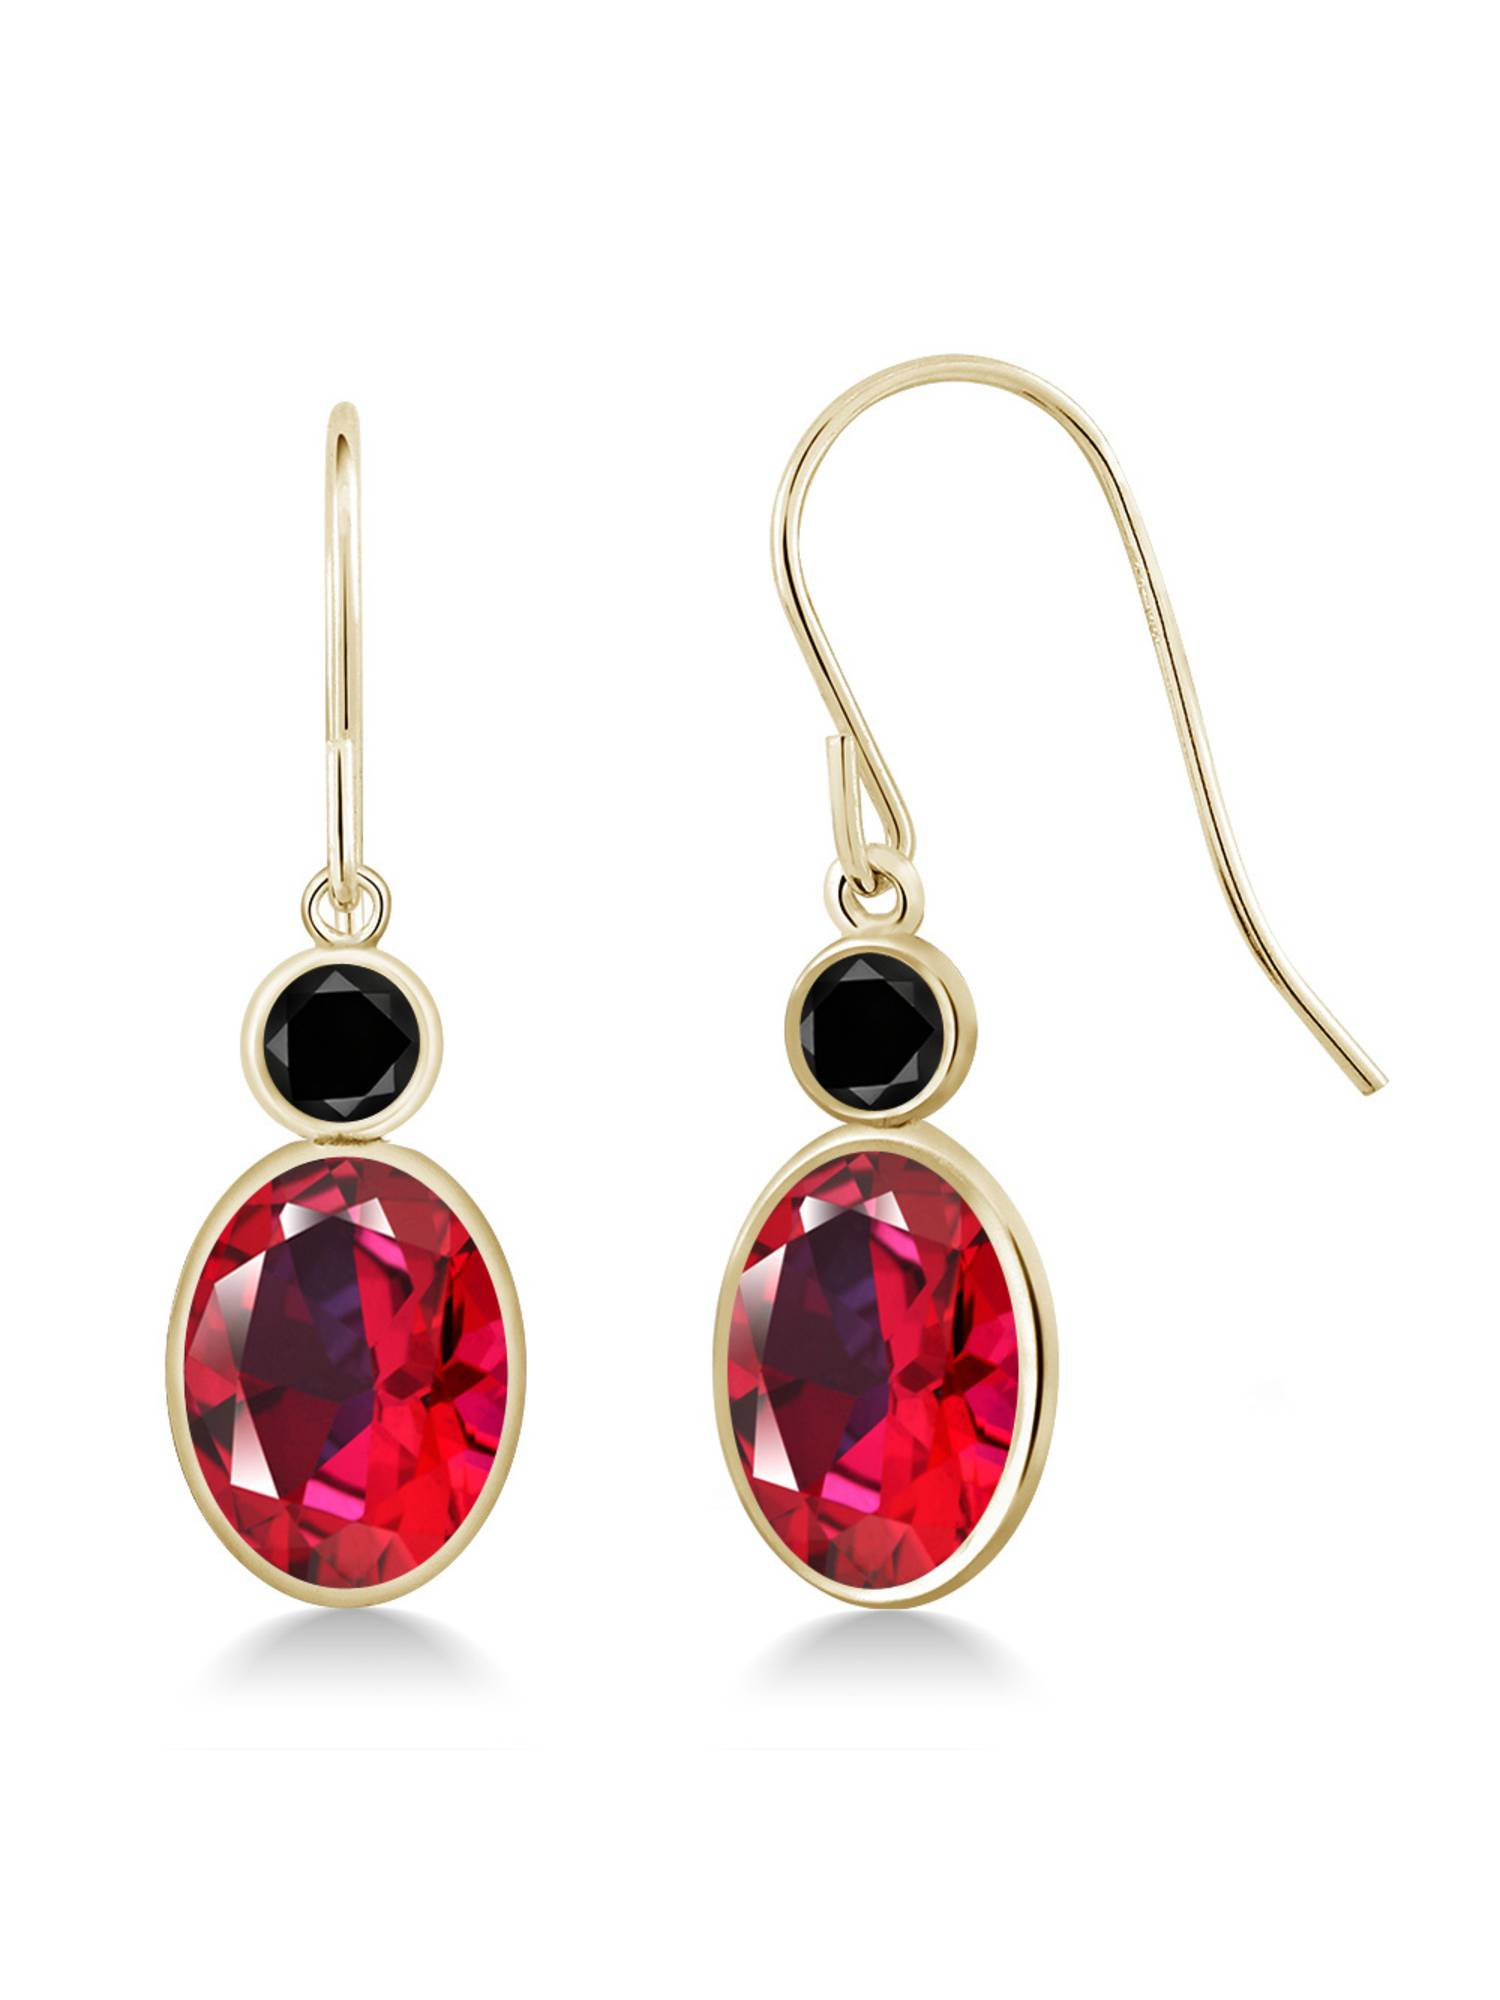 14K Yellow Gold Diamond Earrings Set with Blazing Red Topaz from Swarvoski by